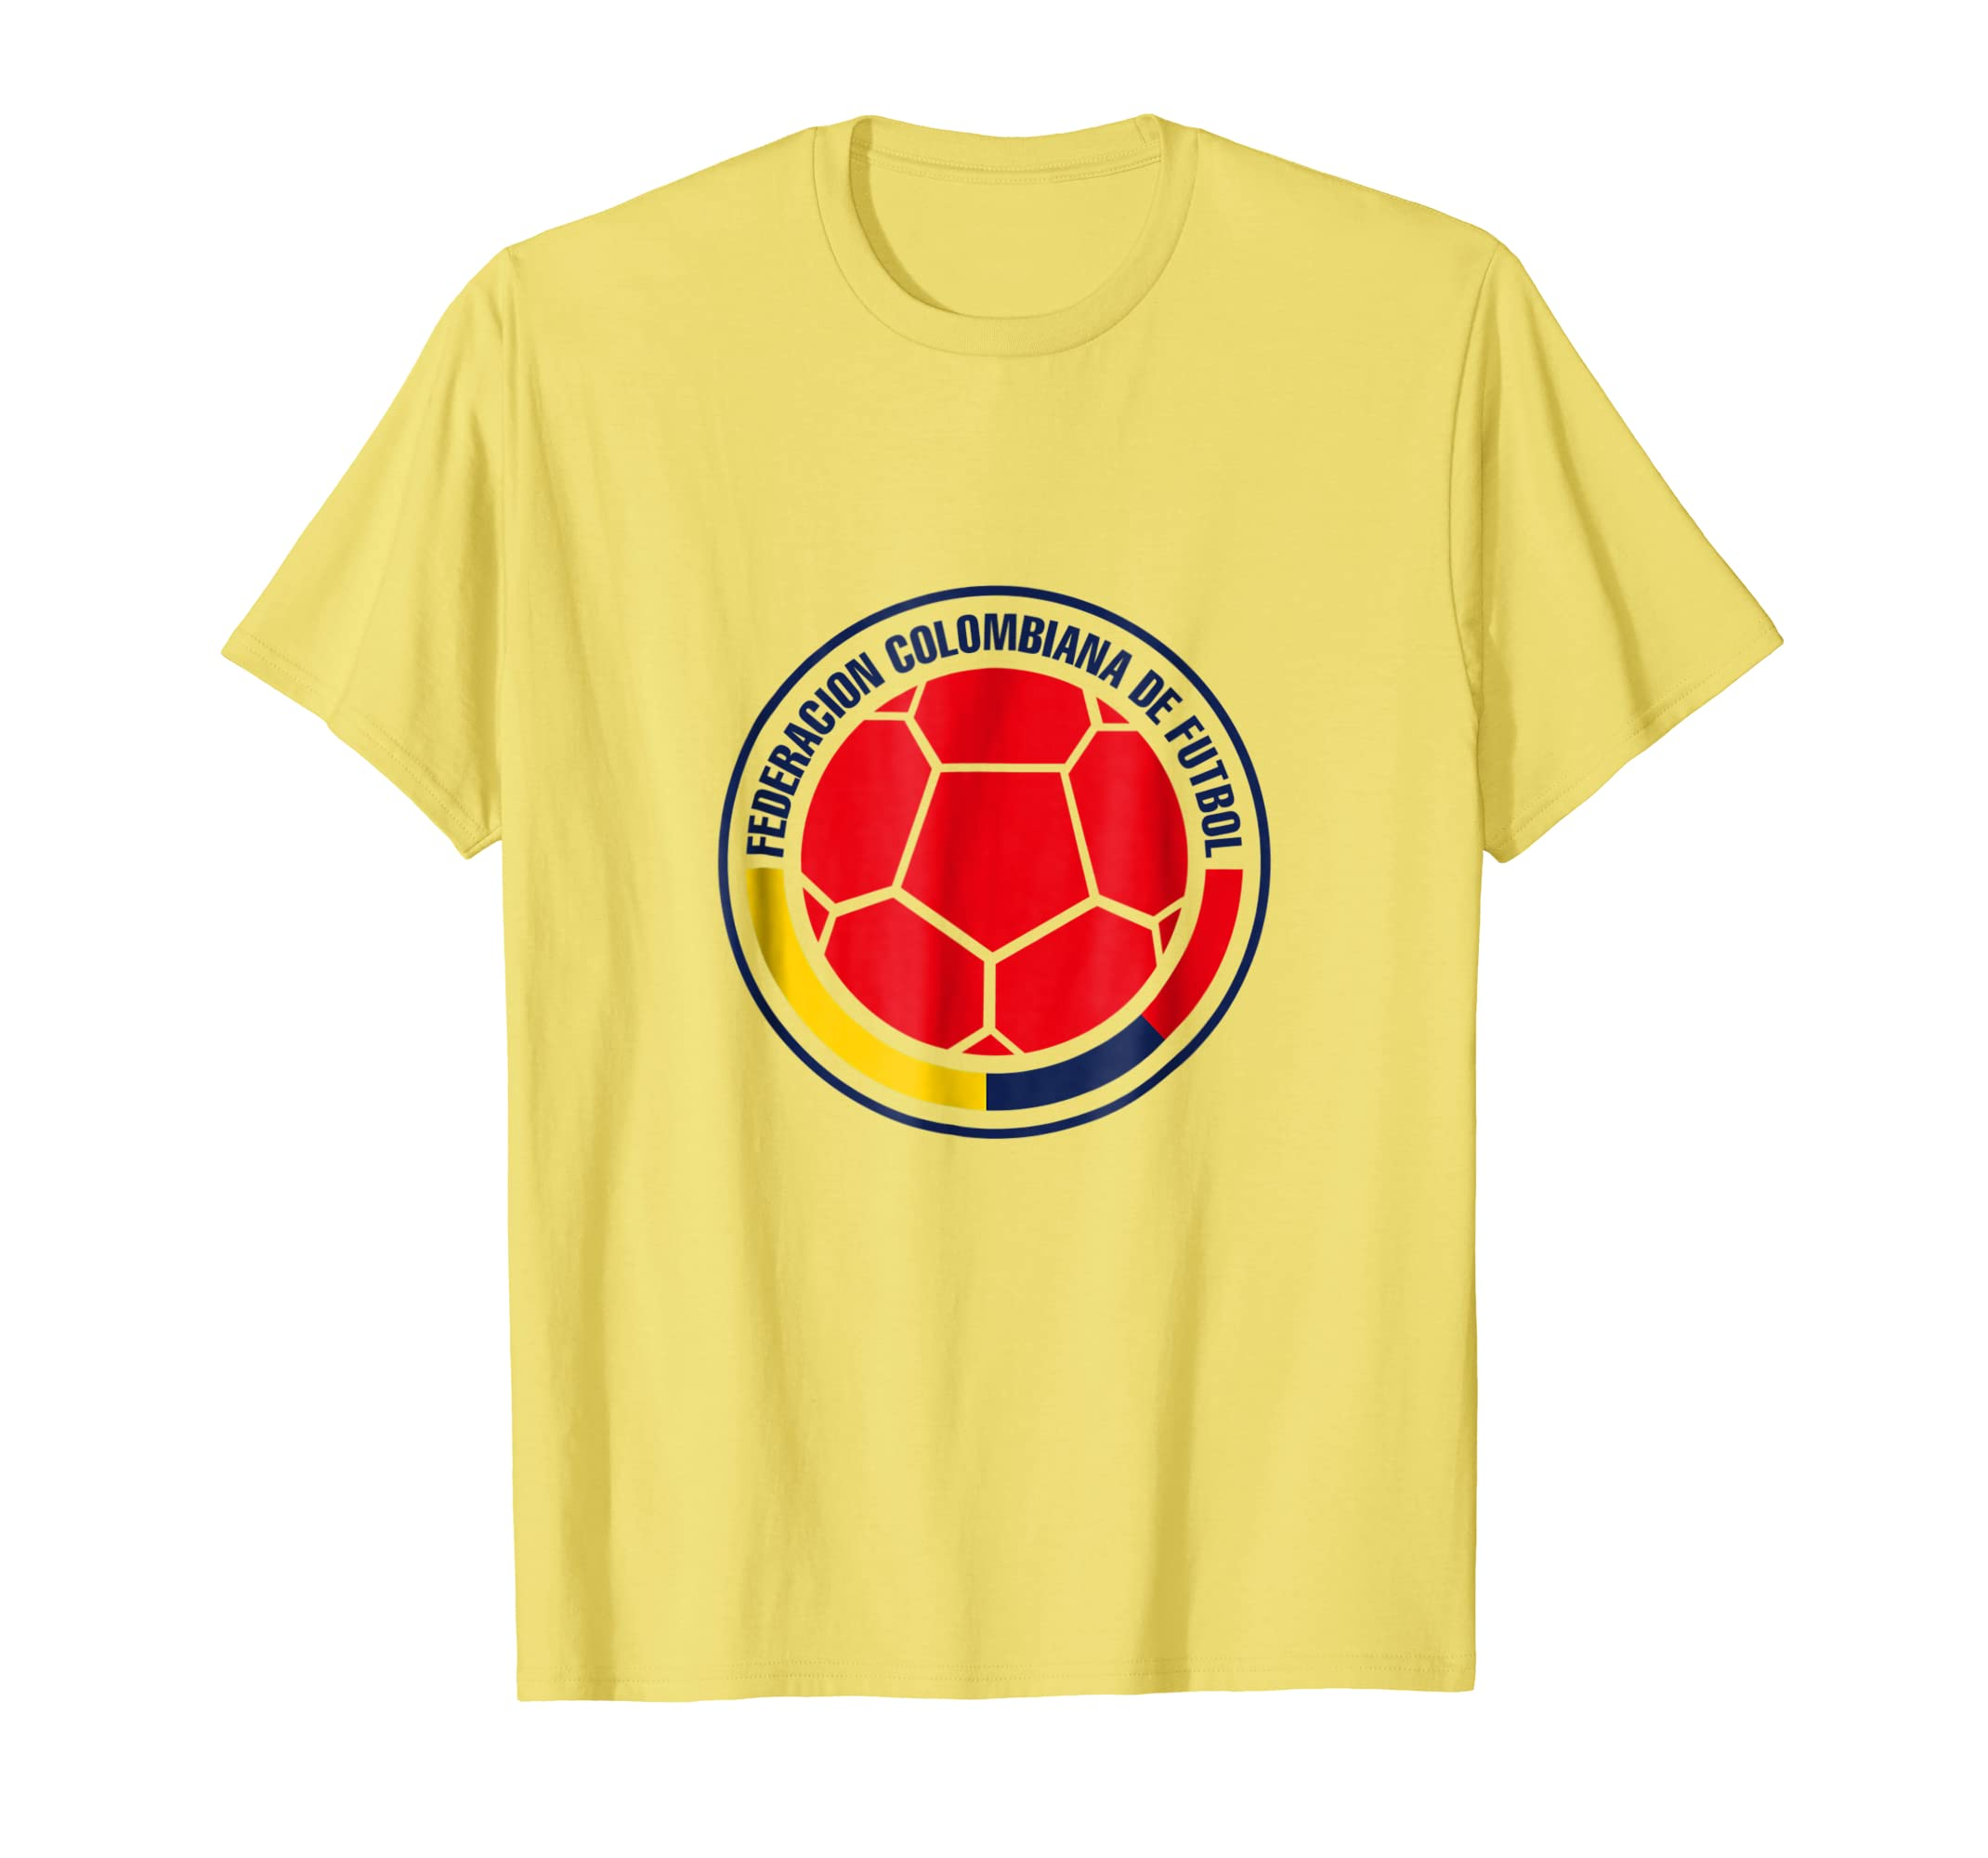 Amazon.com: Seleccion Colombia Futbol Mundial Camiseta TShirt Jersey: Clothing